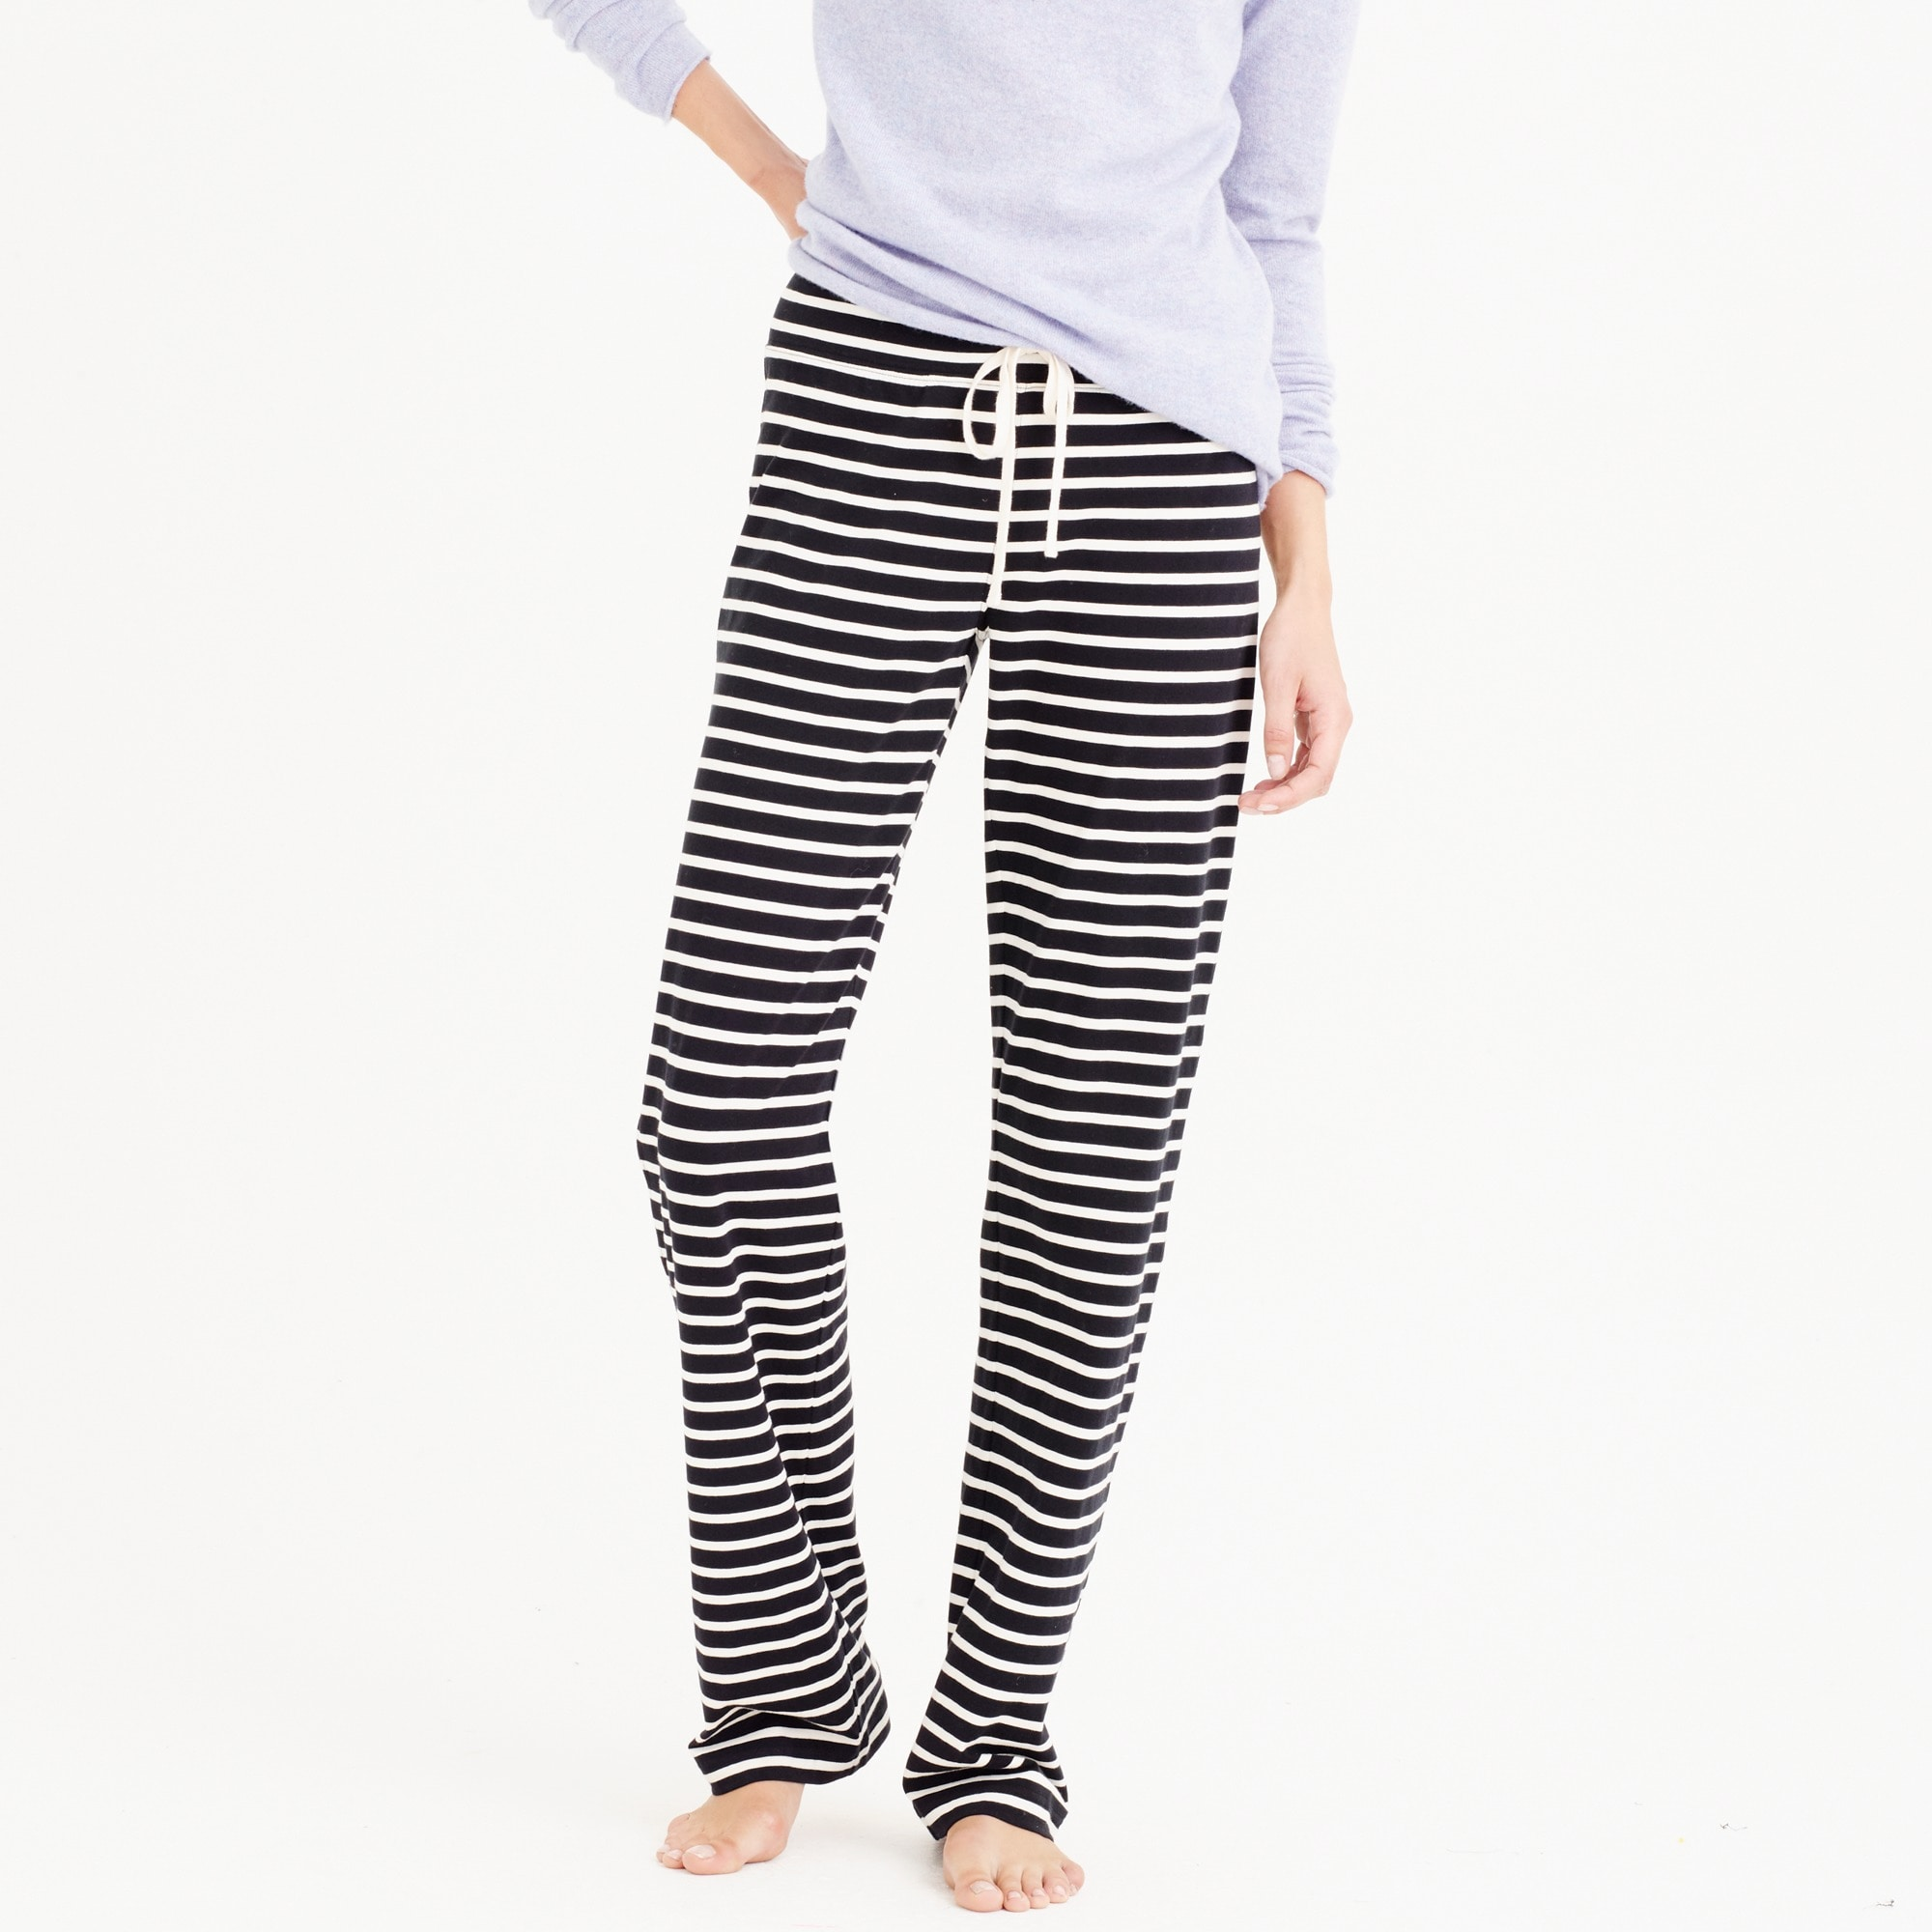 dreamy cotton pant in stripe : women's pajamas & sleepwear